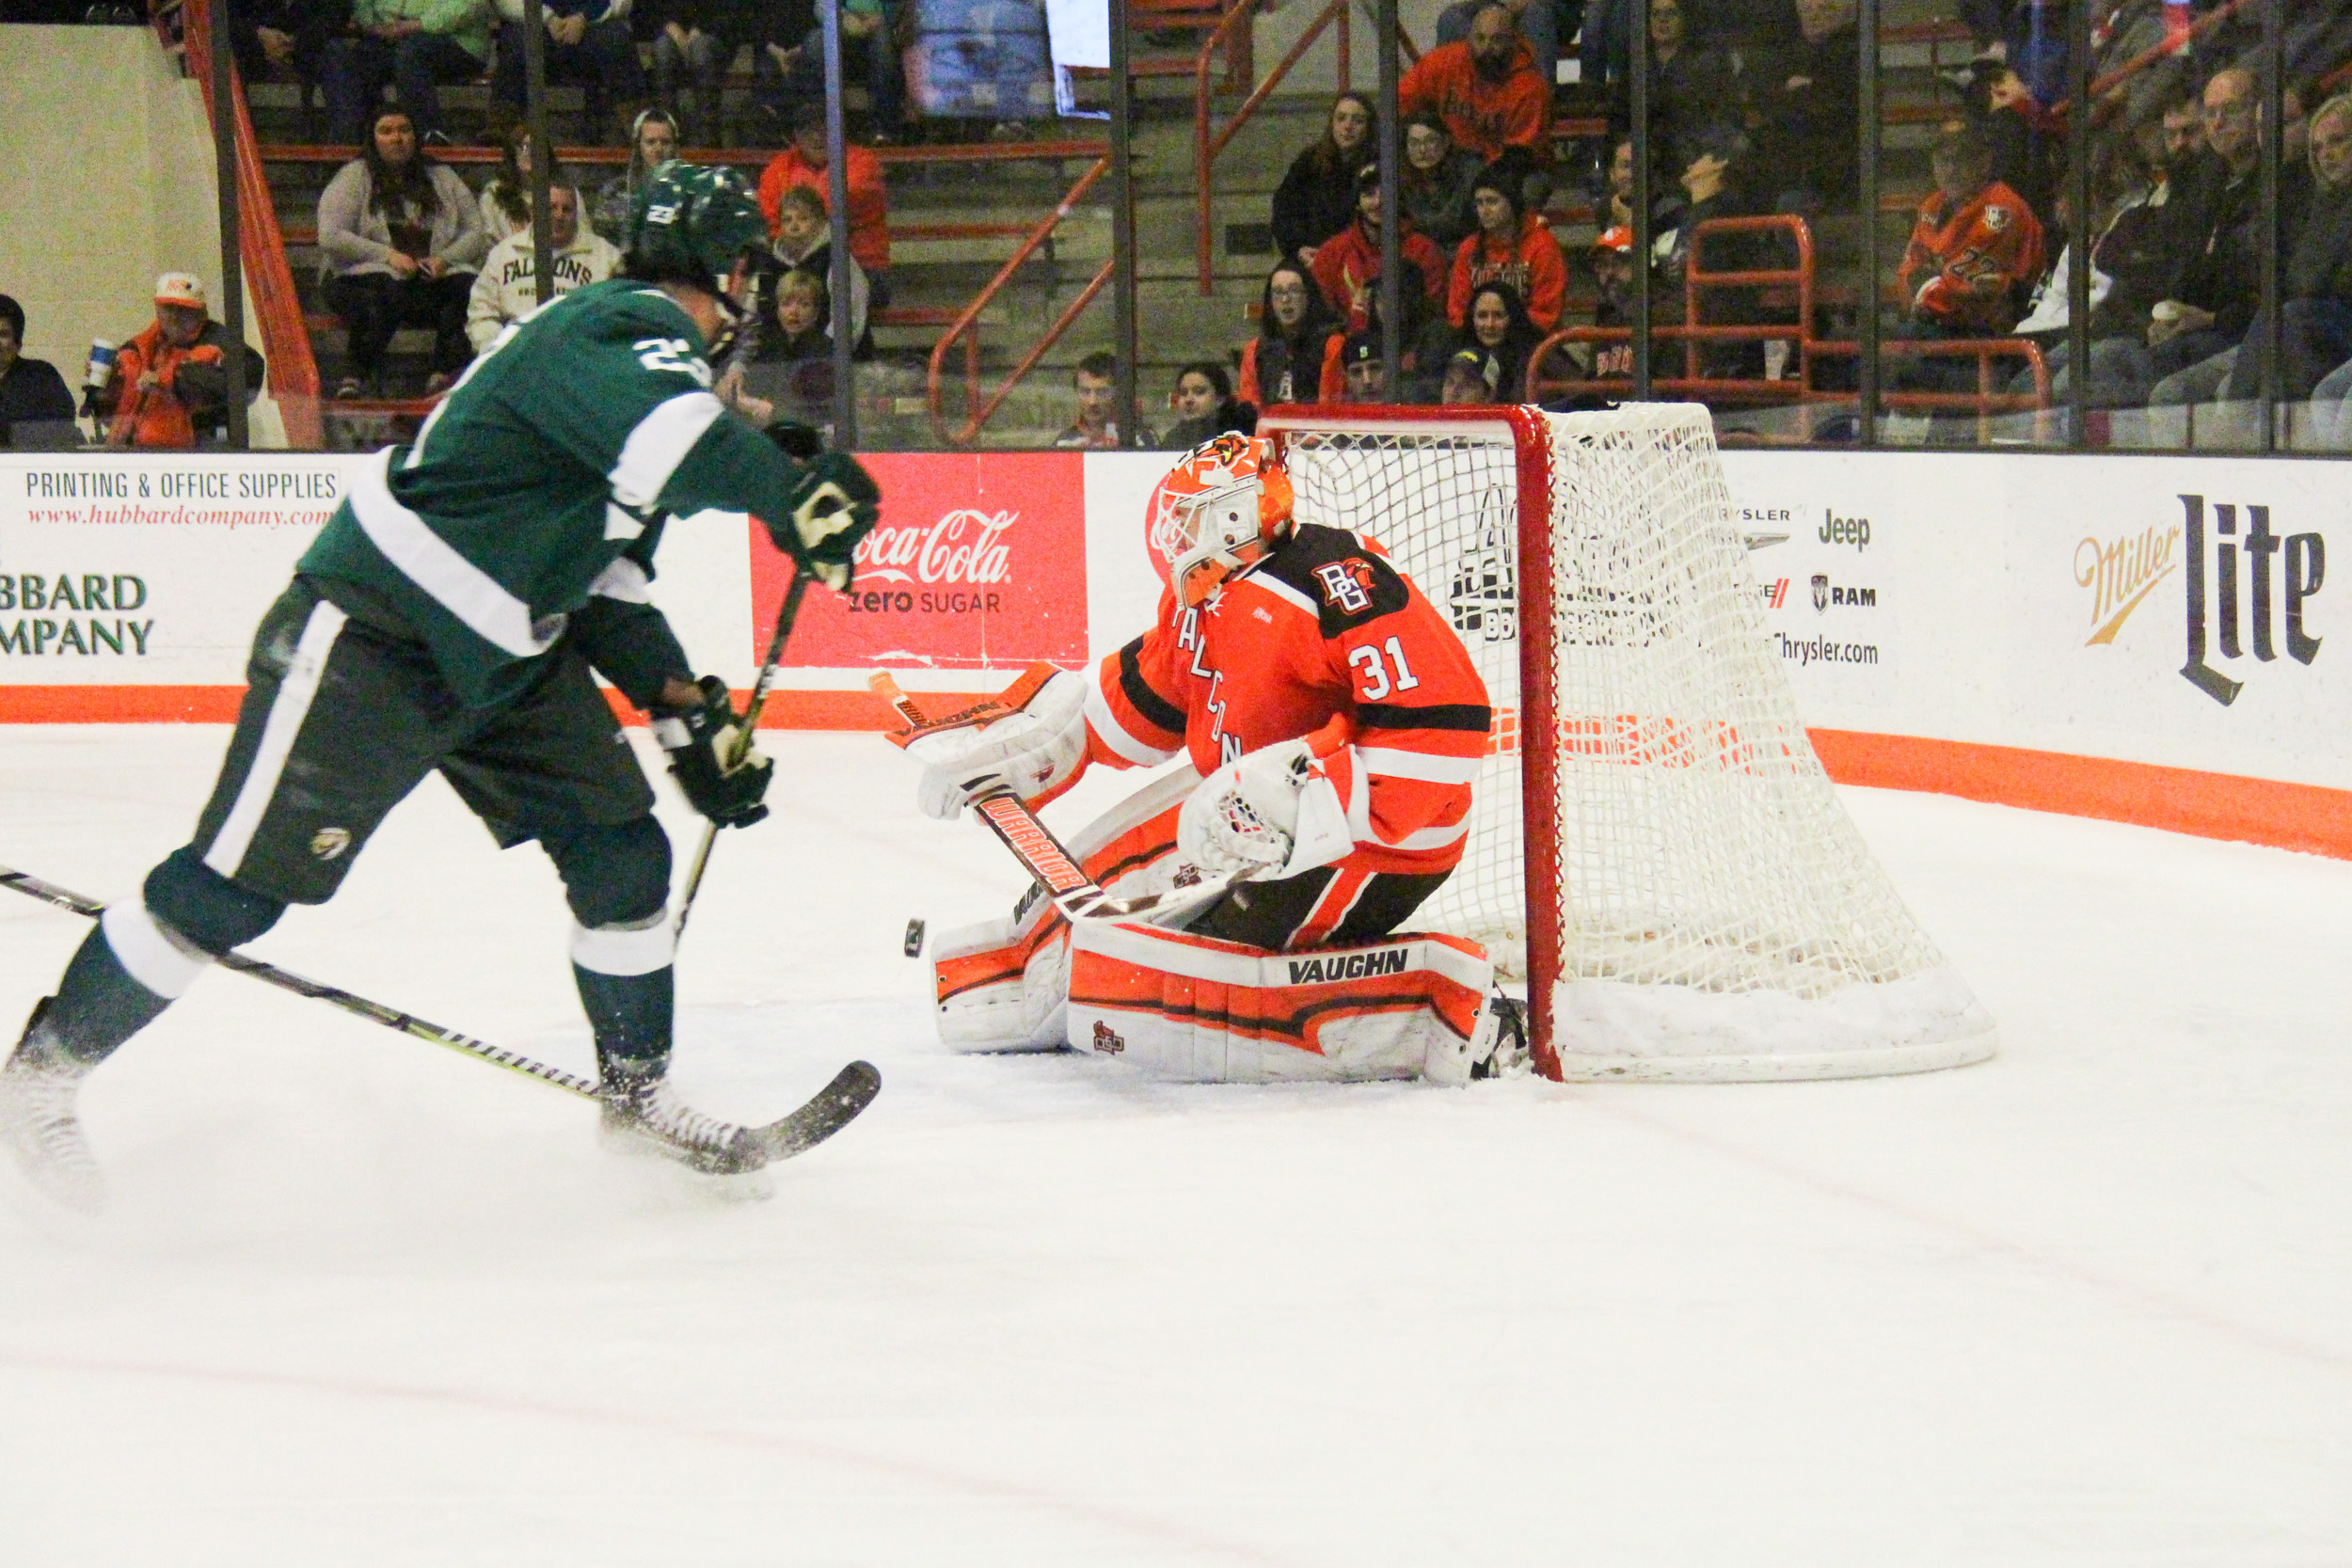 Coffman's late marker gives Falcons 3-1 win over Beavers